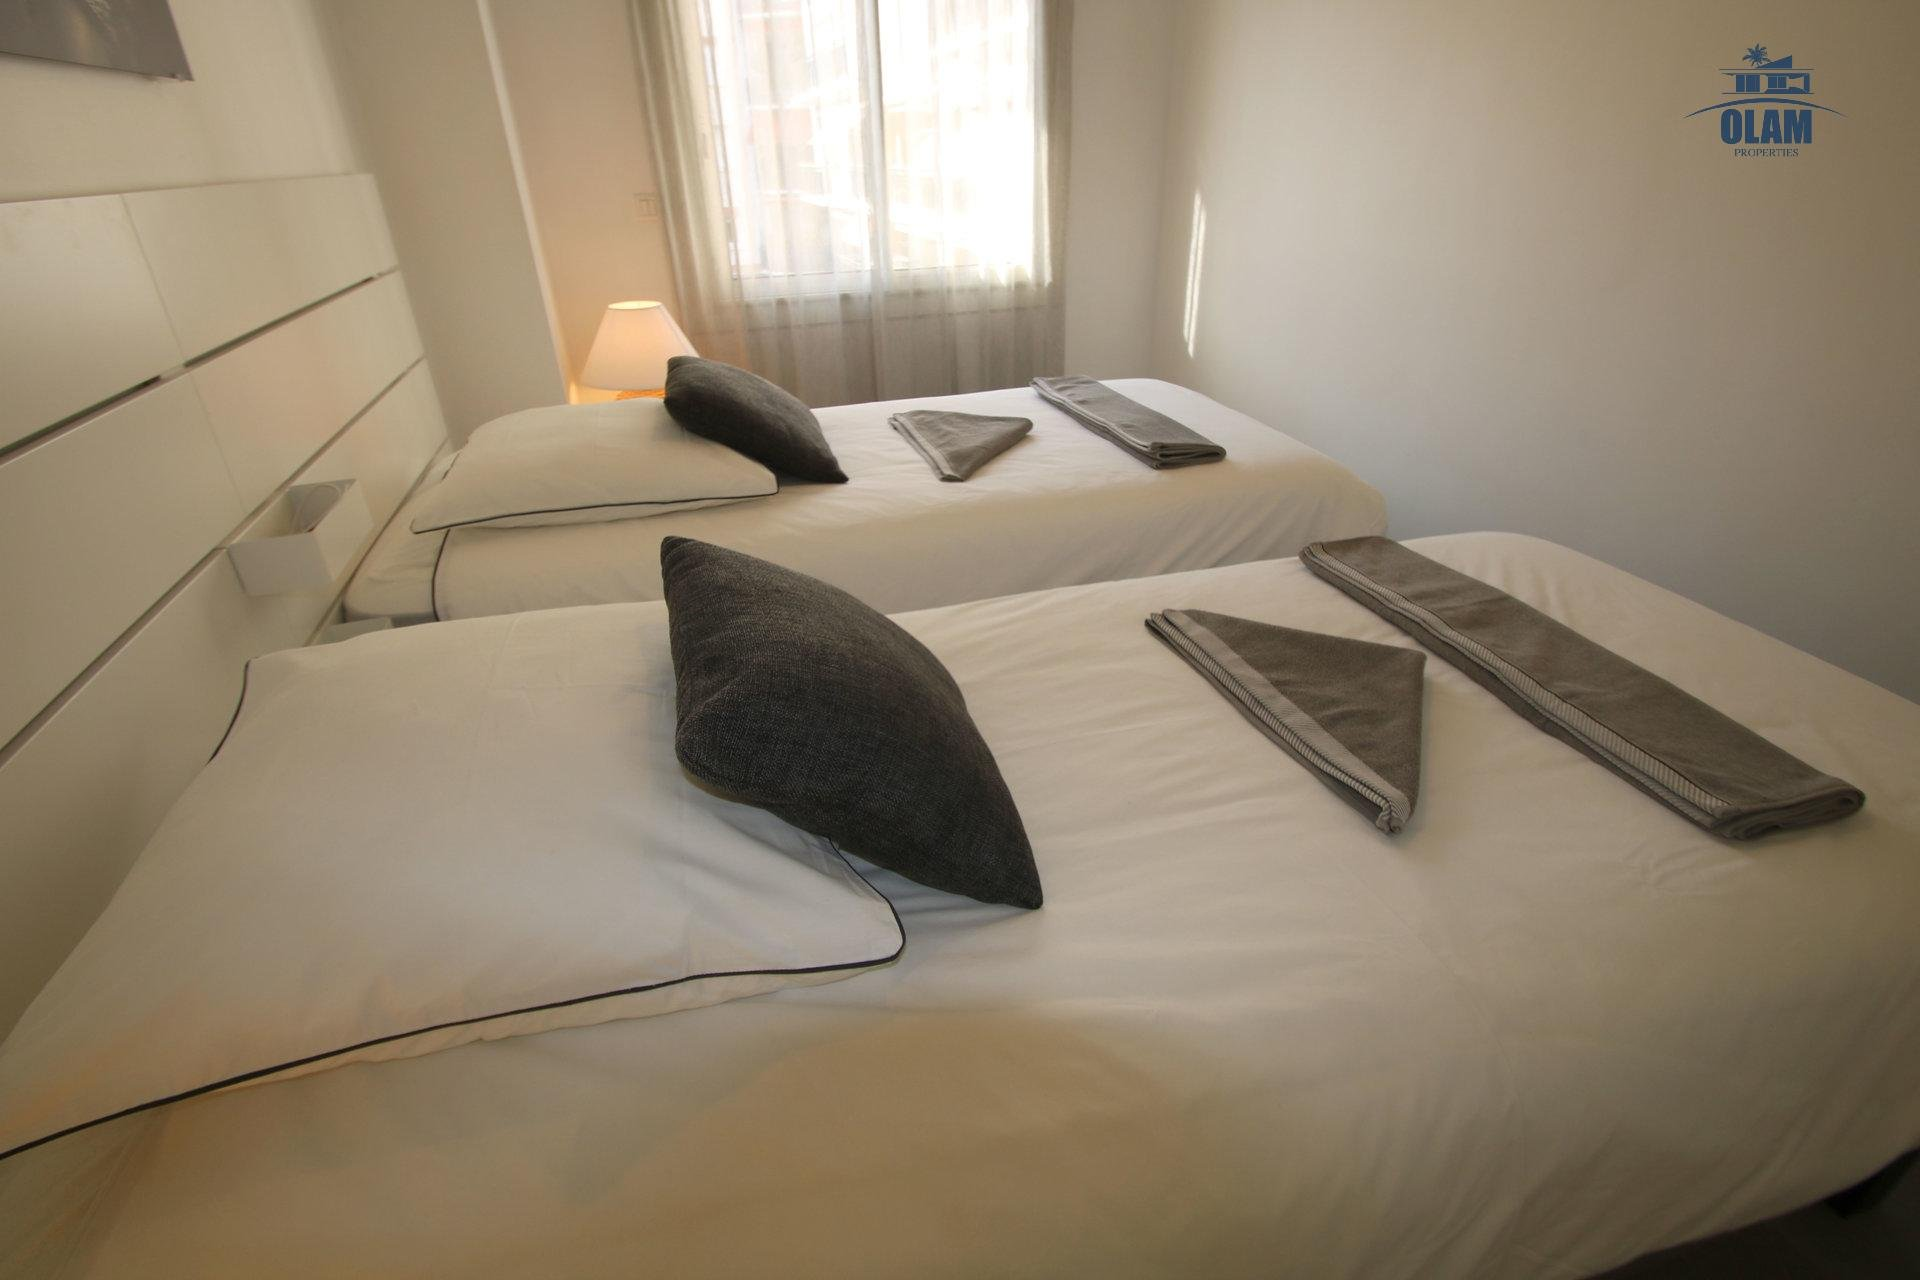 Bedroom, Cannes, Seasonal rental, Croisette, Armenonville, French Riviera